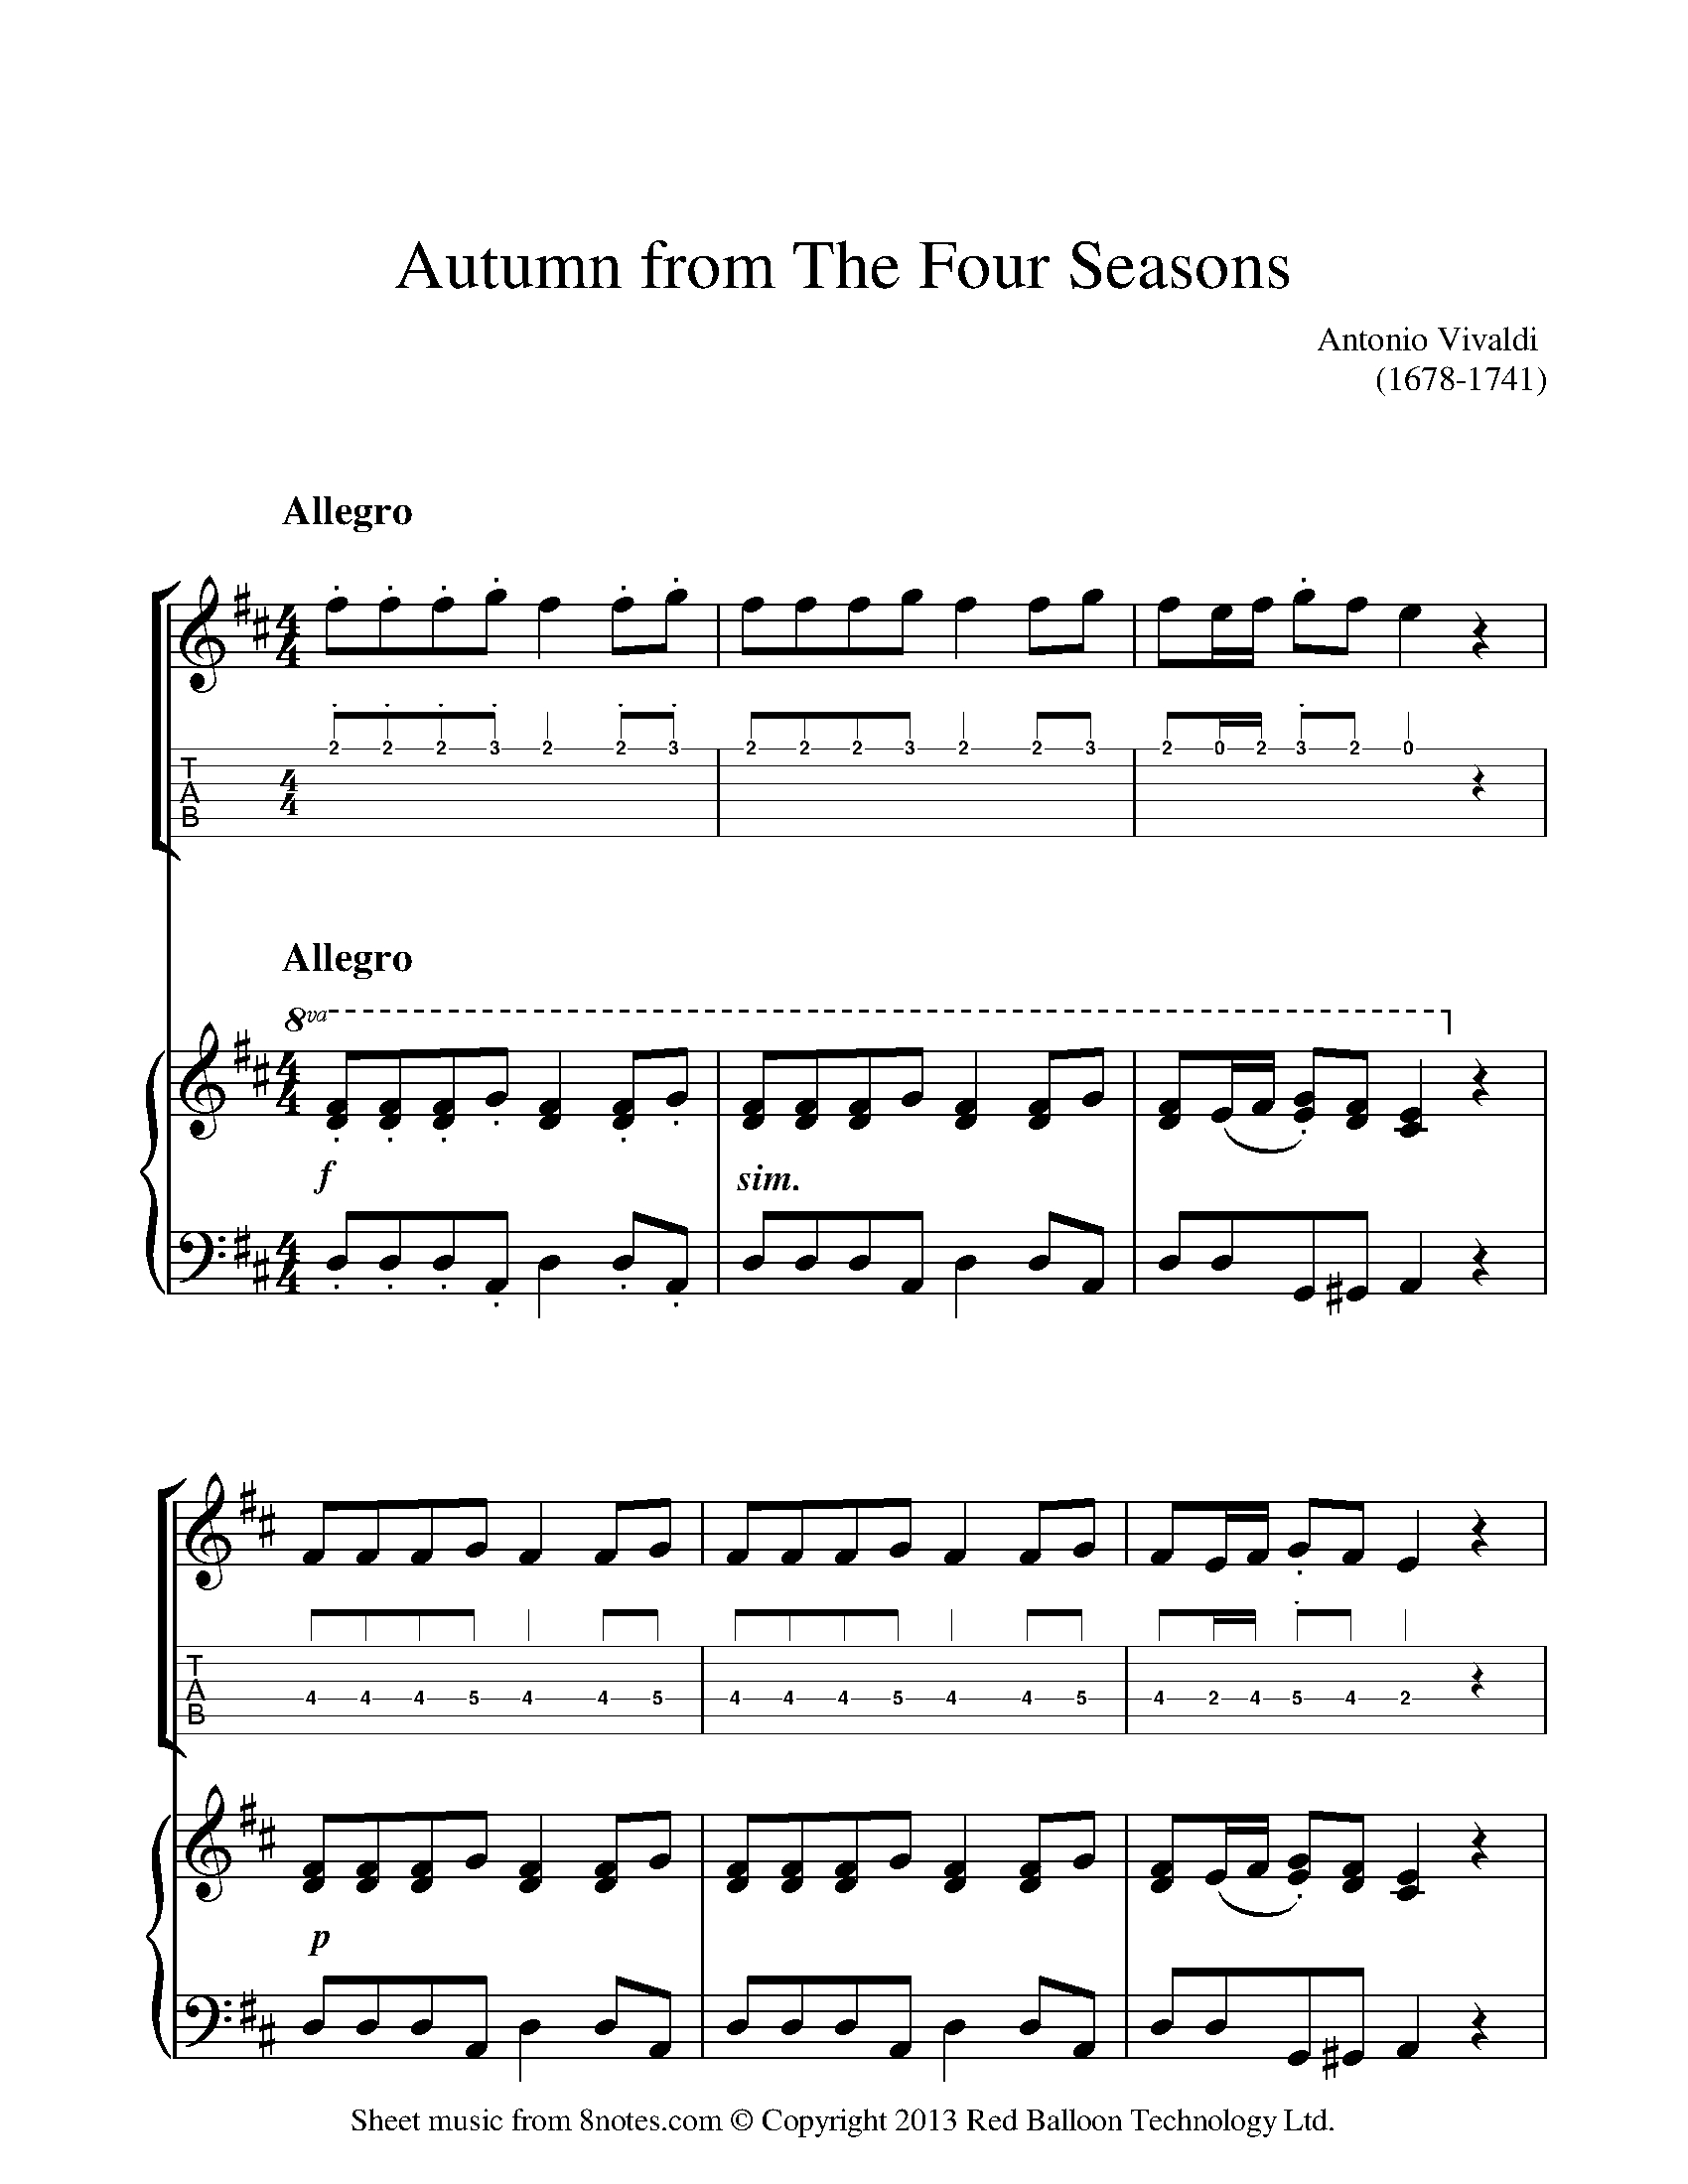 Free Guitar Sheet Music, Lessons & Resources - 8Notes - Free Guitar Sheet Music For Popular Songs Printable